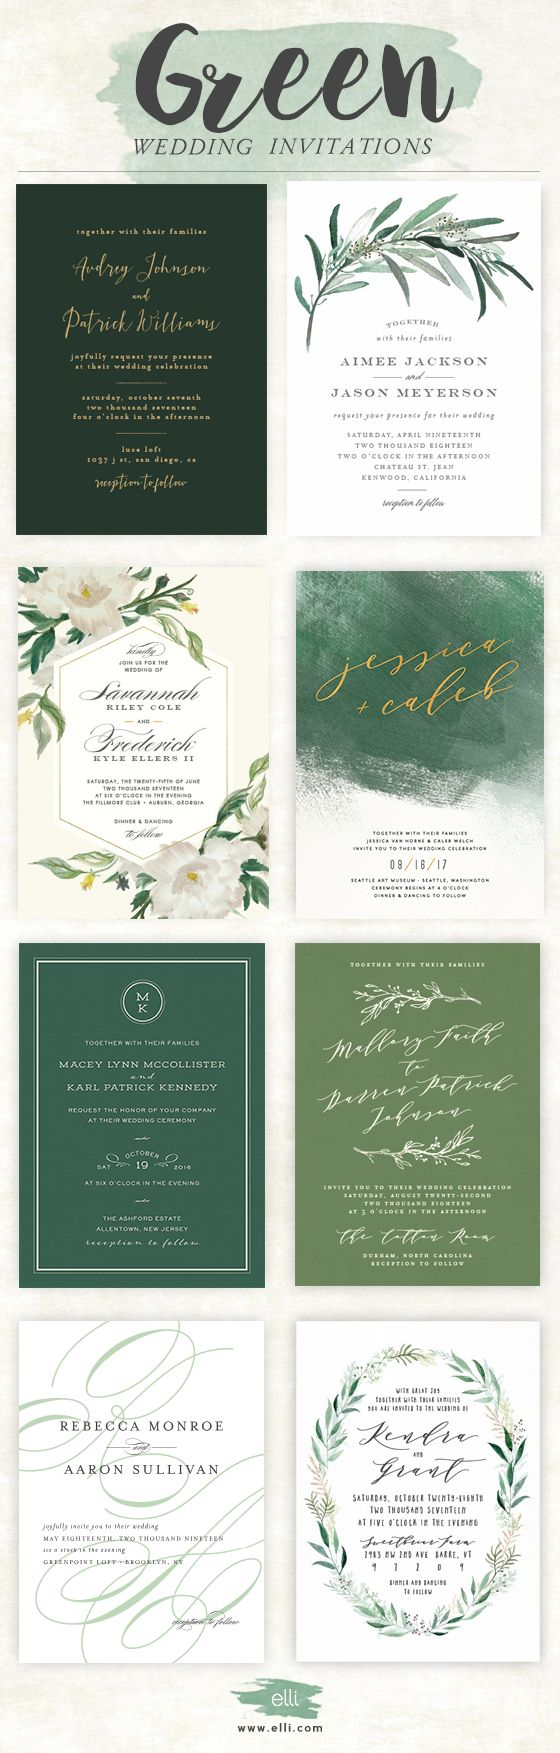 navy blue and kelly green wedding invitations%0A Gorgeous selection of green wedding invitations from Elli com